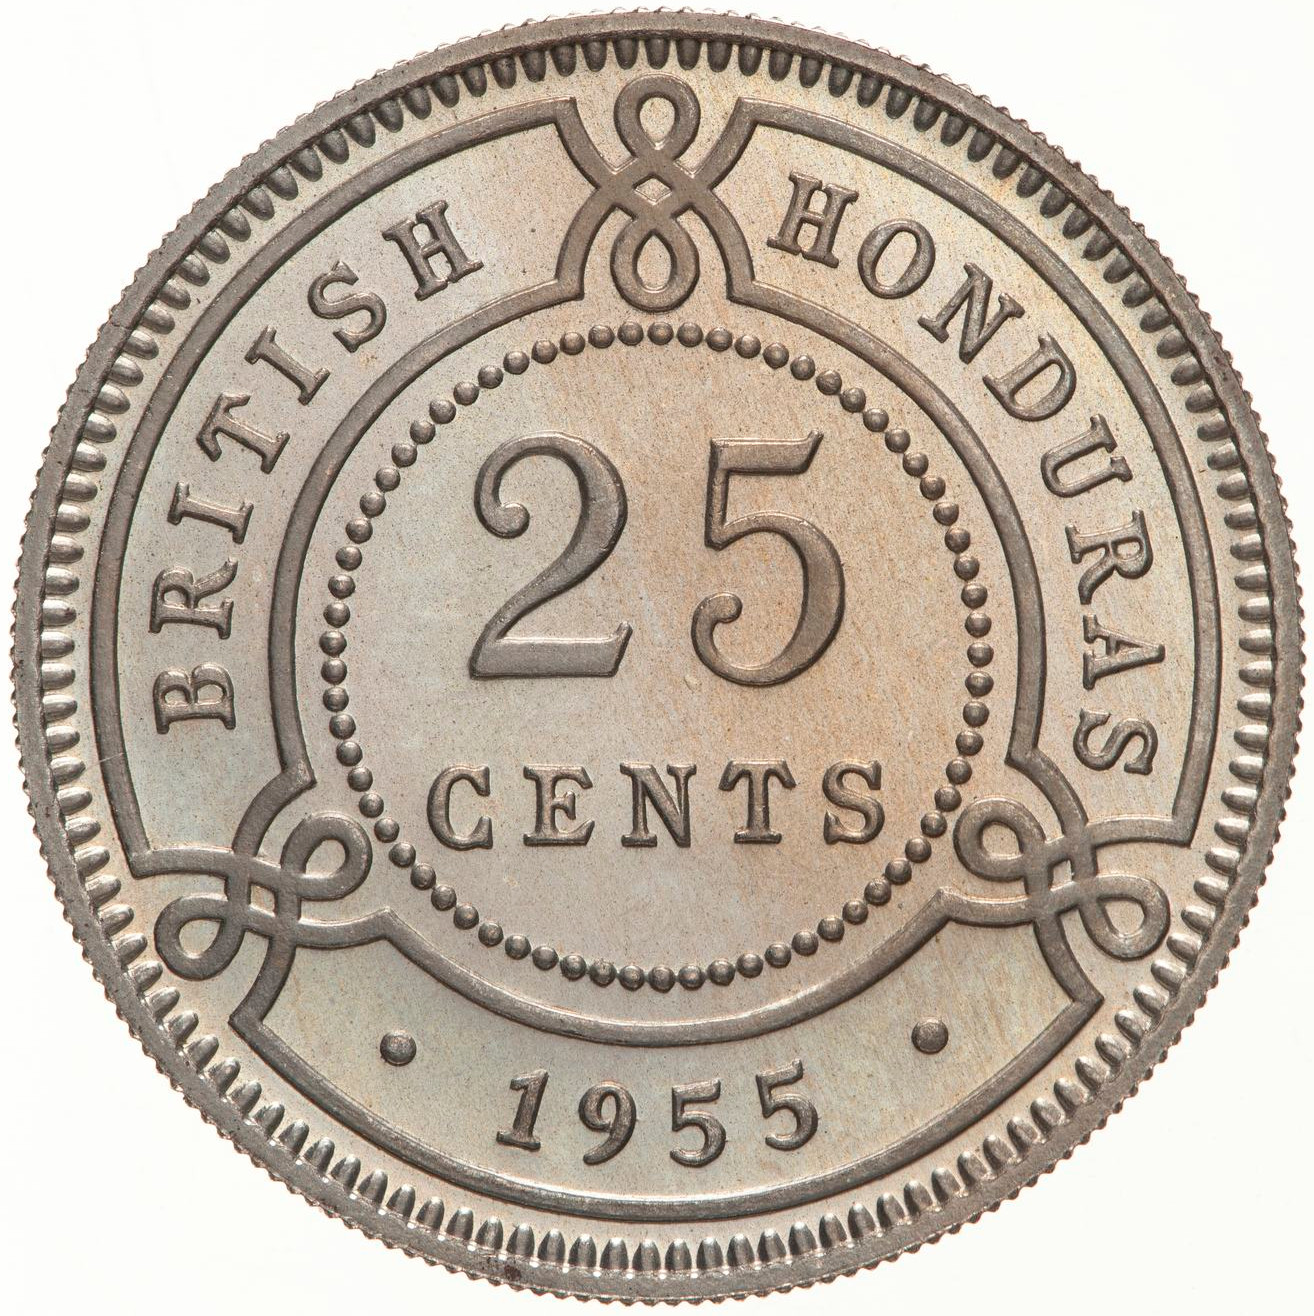 Twenty Five Cents 1955: Photo Proof Coin - 25 Cents, British Honduras (Belize), 1955